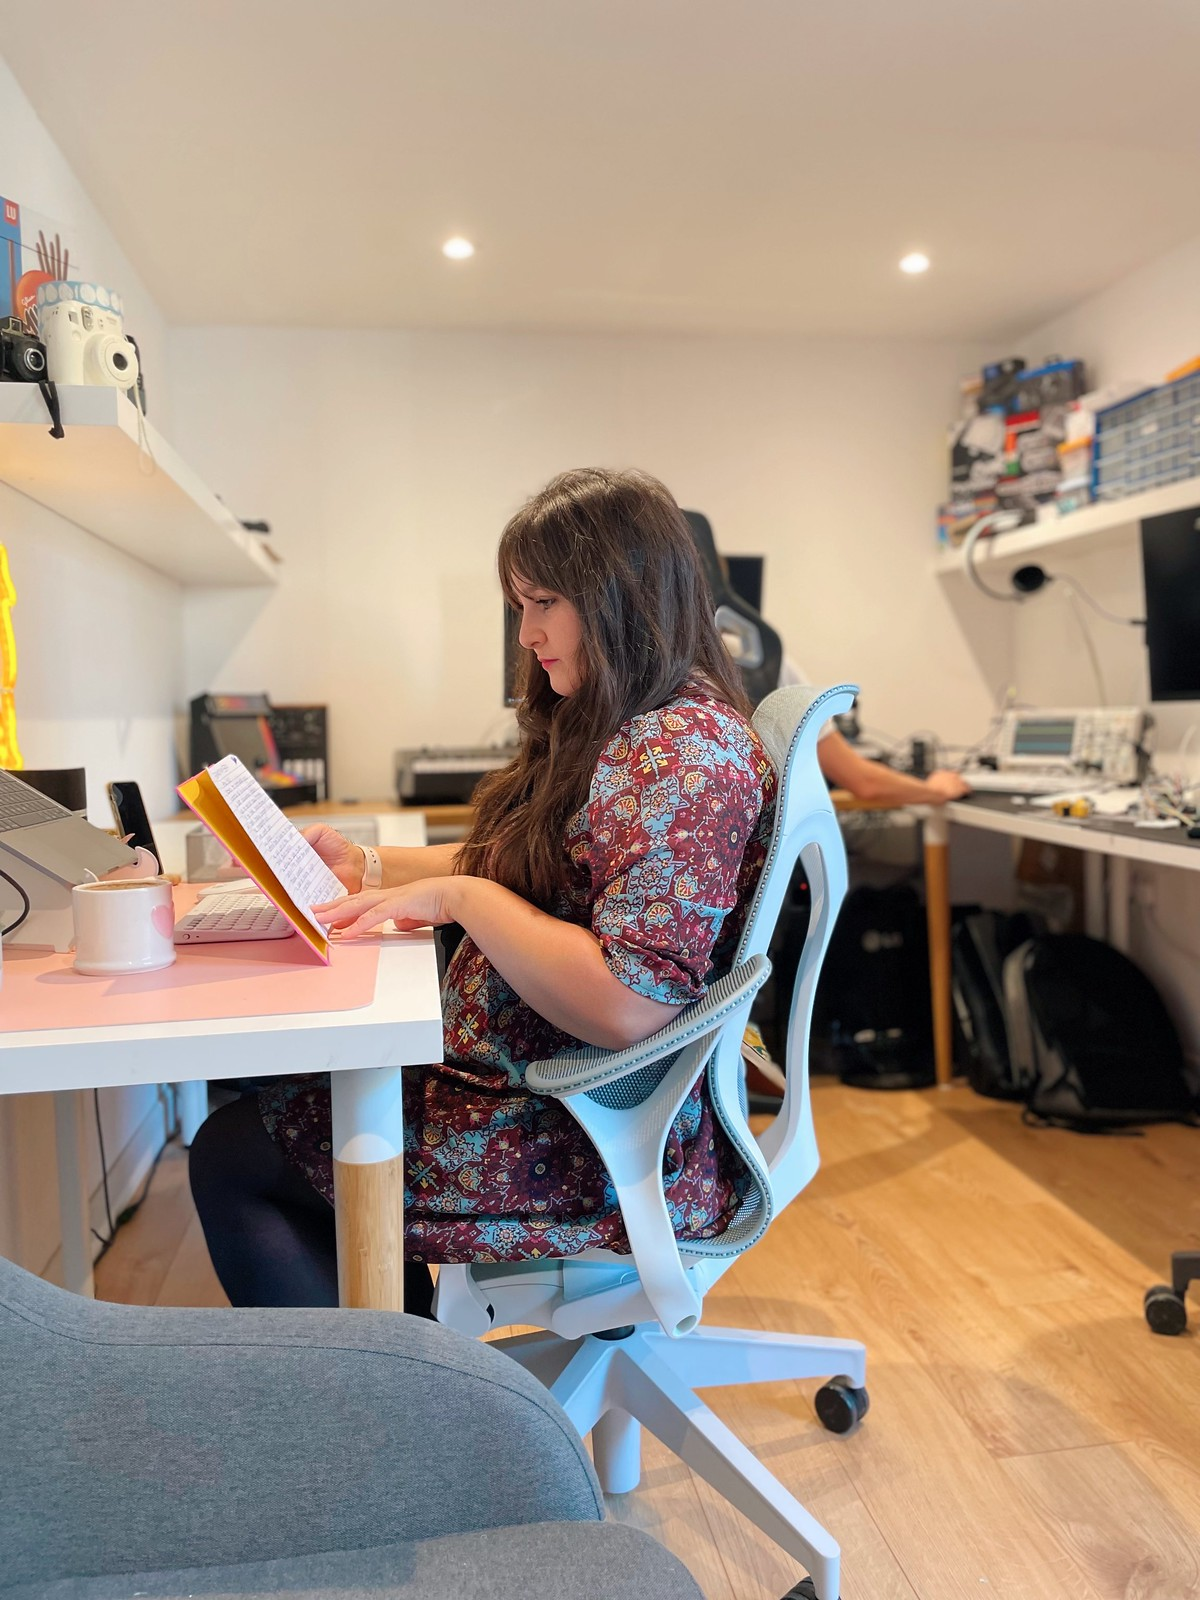 Five steps for effectively working from your home office